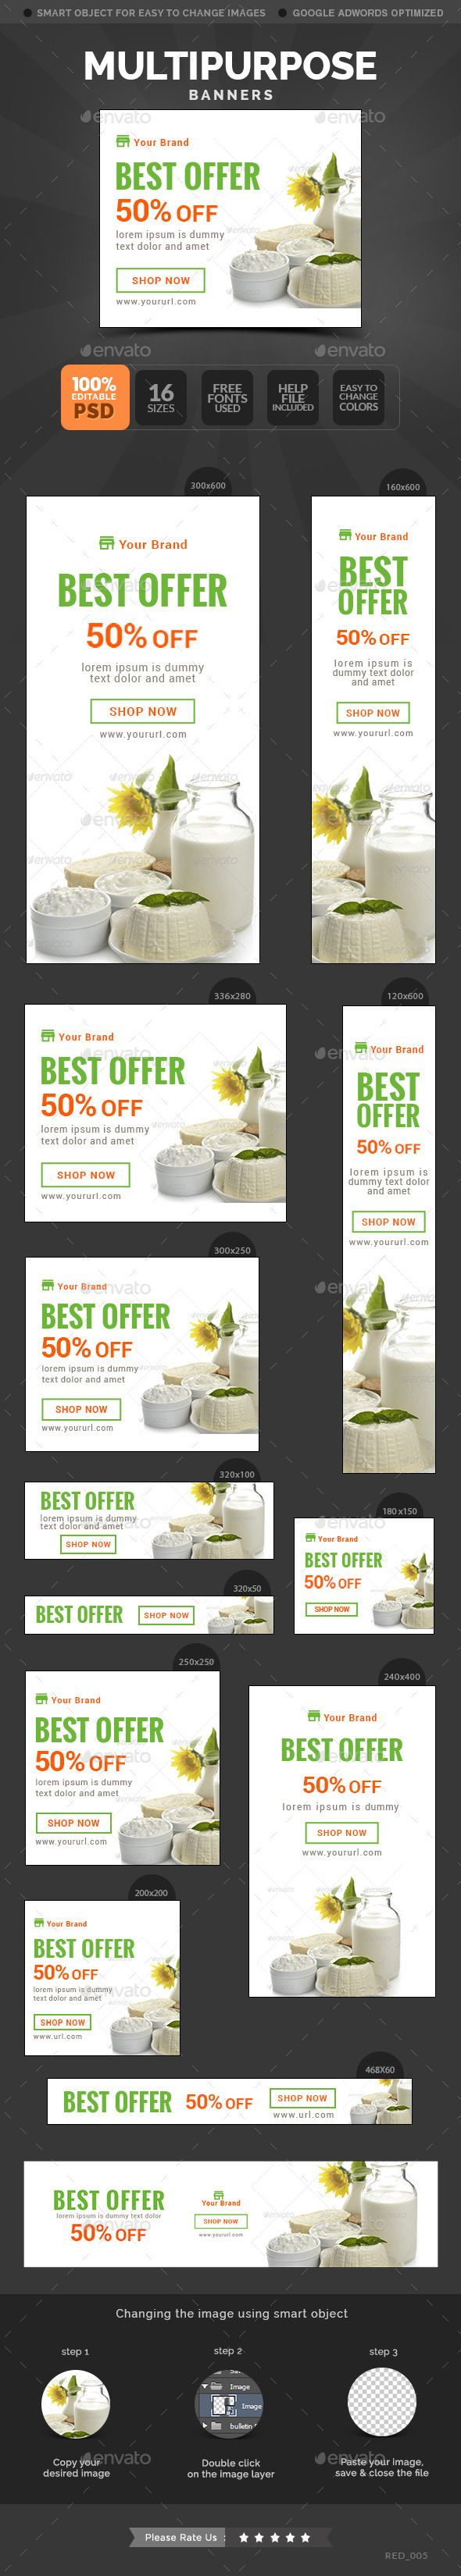 #Multipurpose #Banners - Banners & Ads #Web #Elements Download here: https://graphicriver.net/item/multipurpose-banners/10654524?ref=alena994